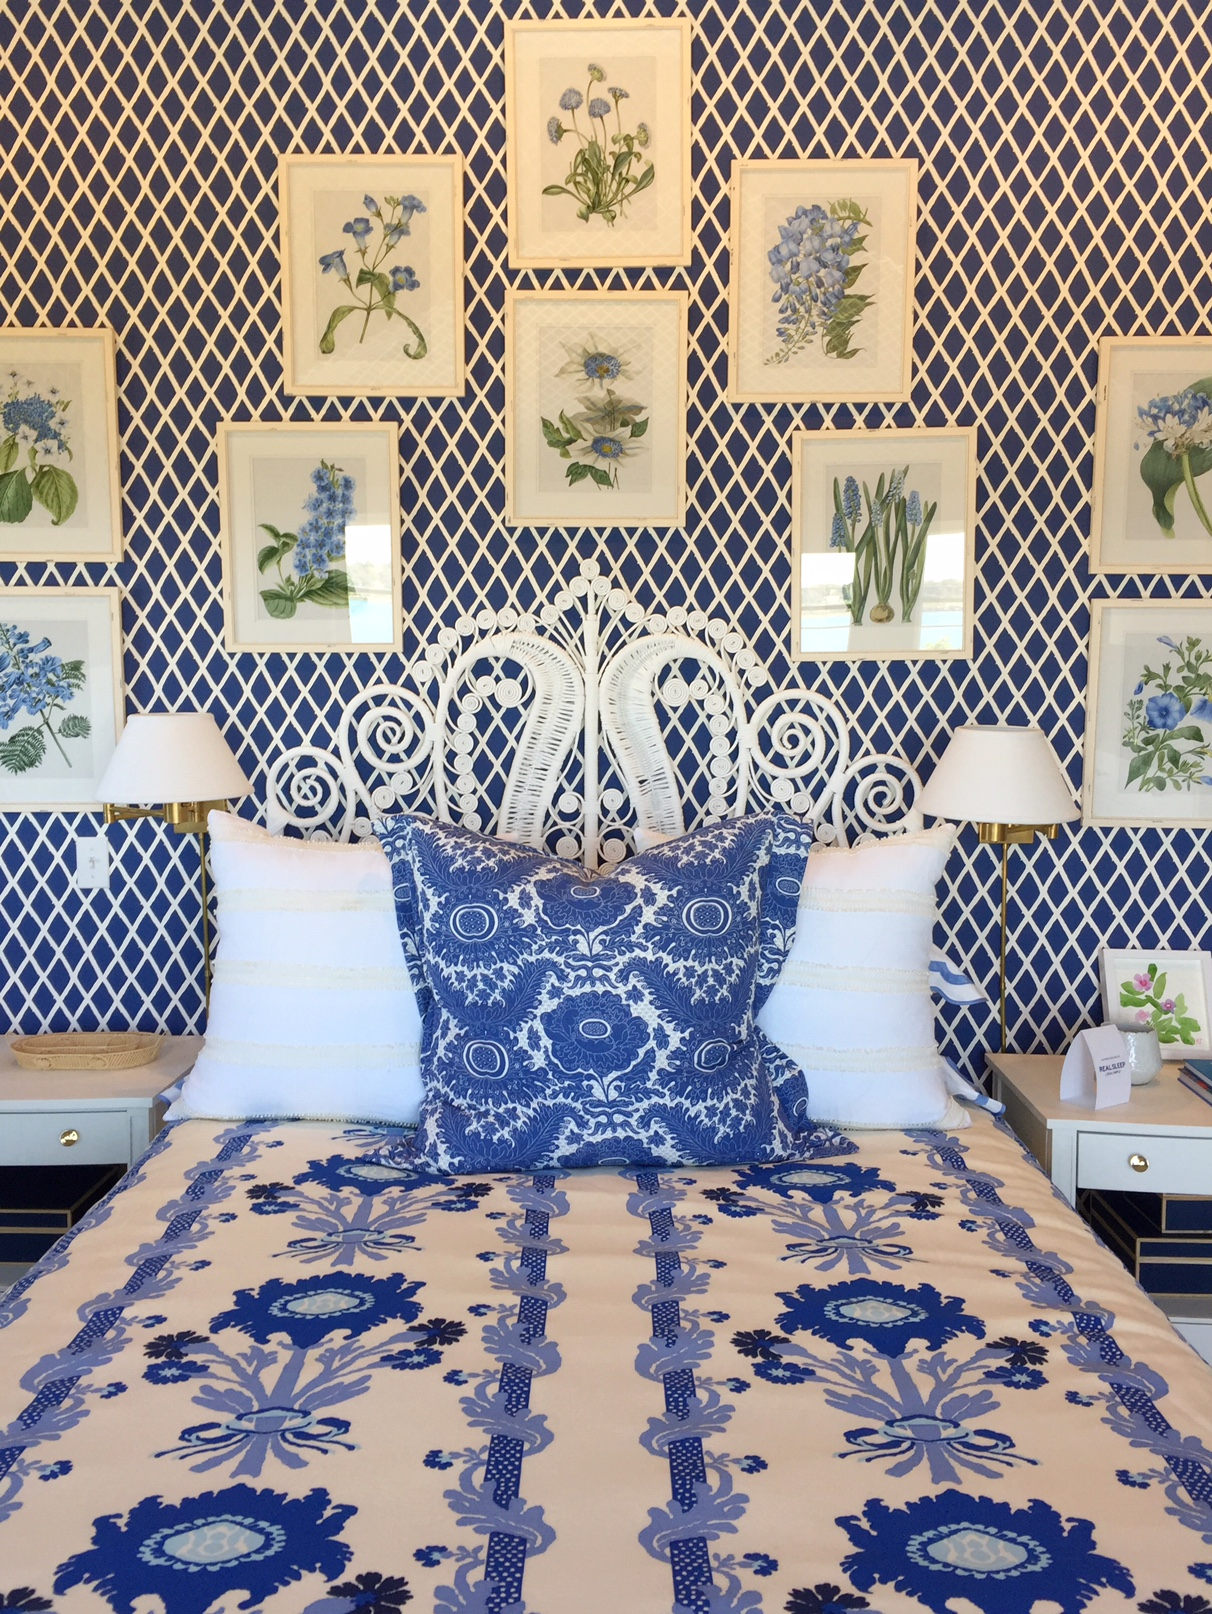 blue and white wallpaper in bedroom by Mark Sikes